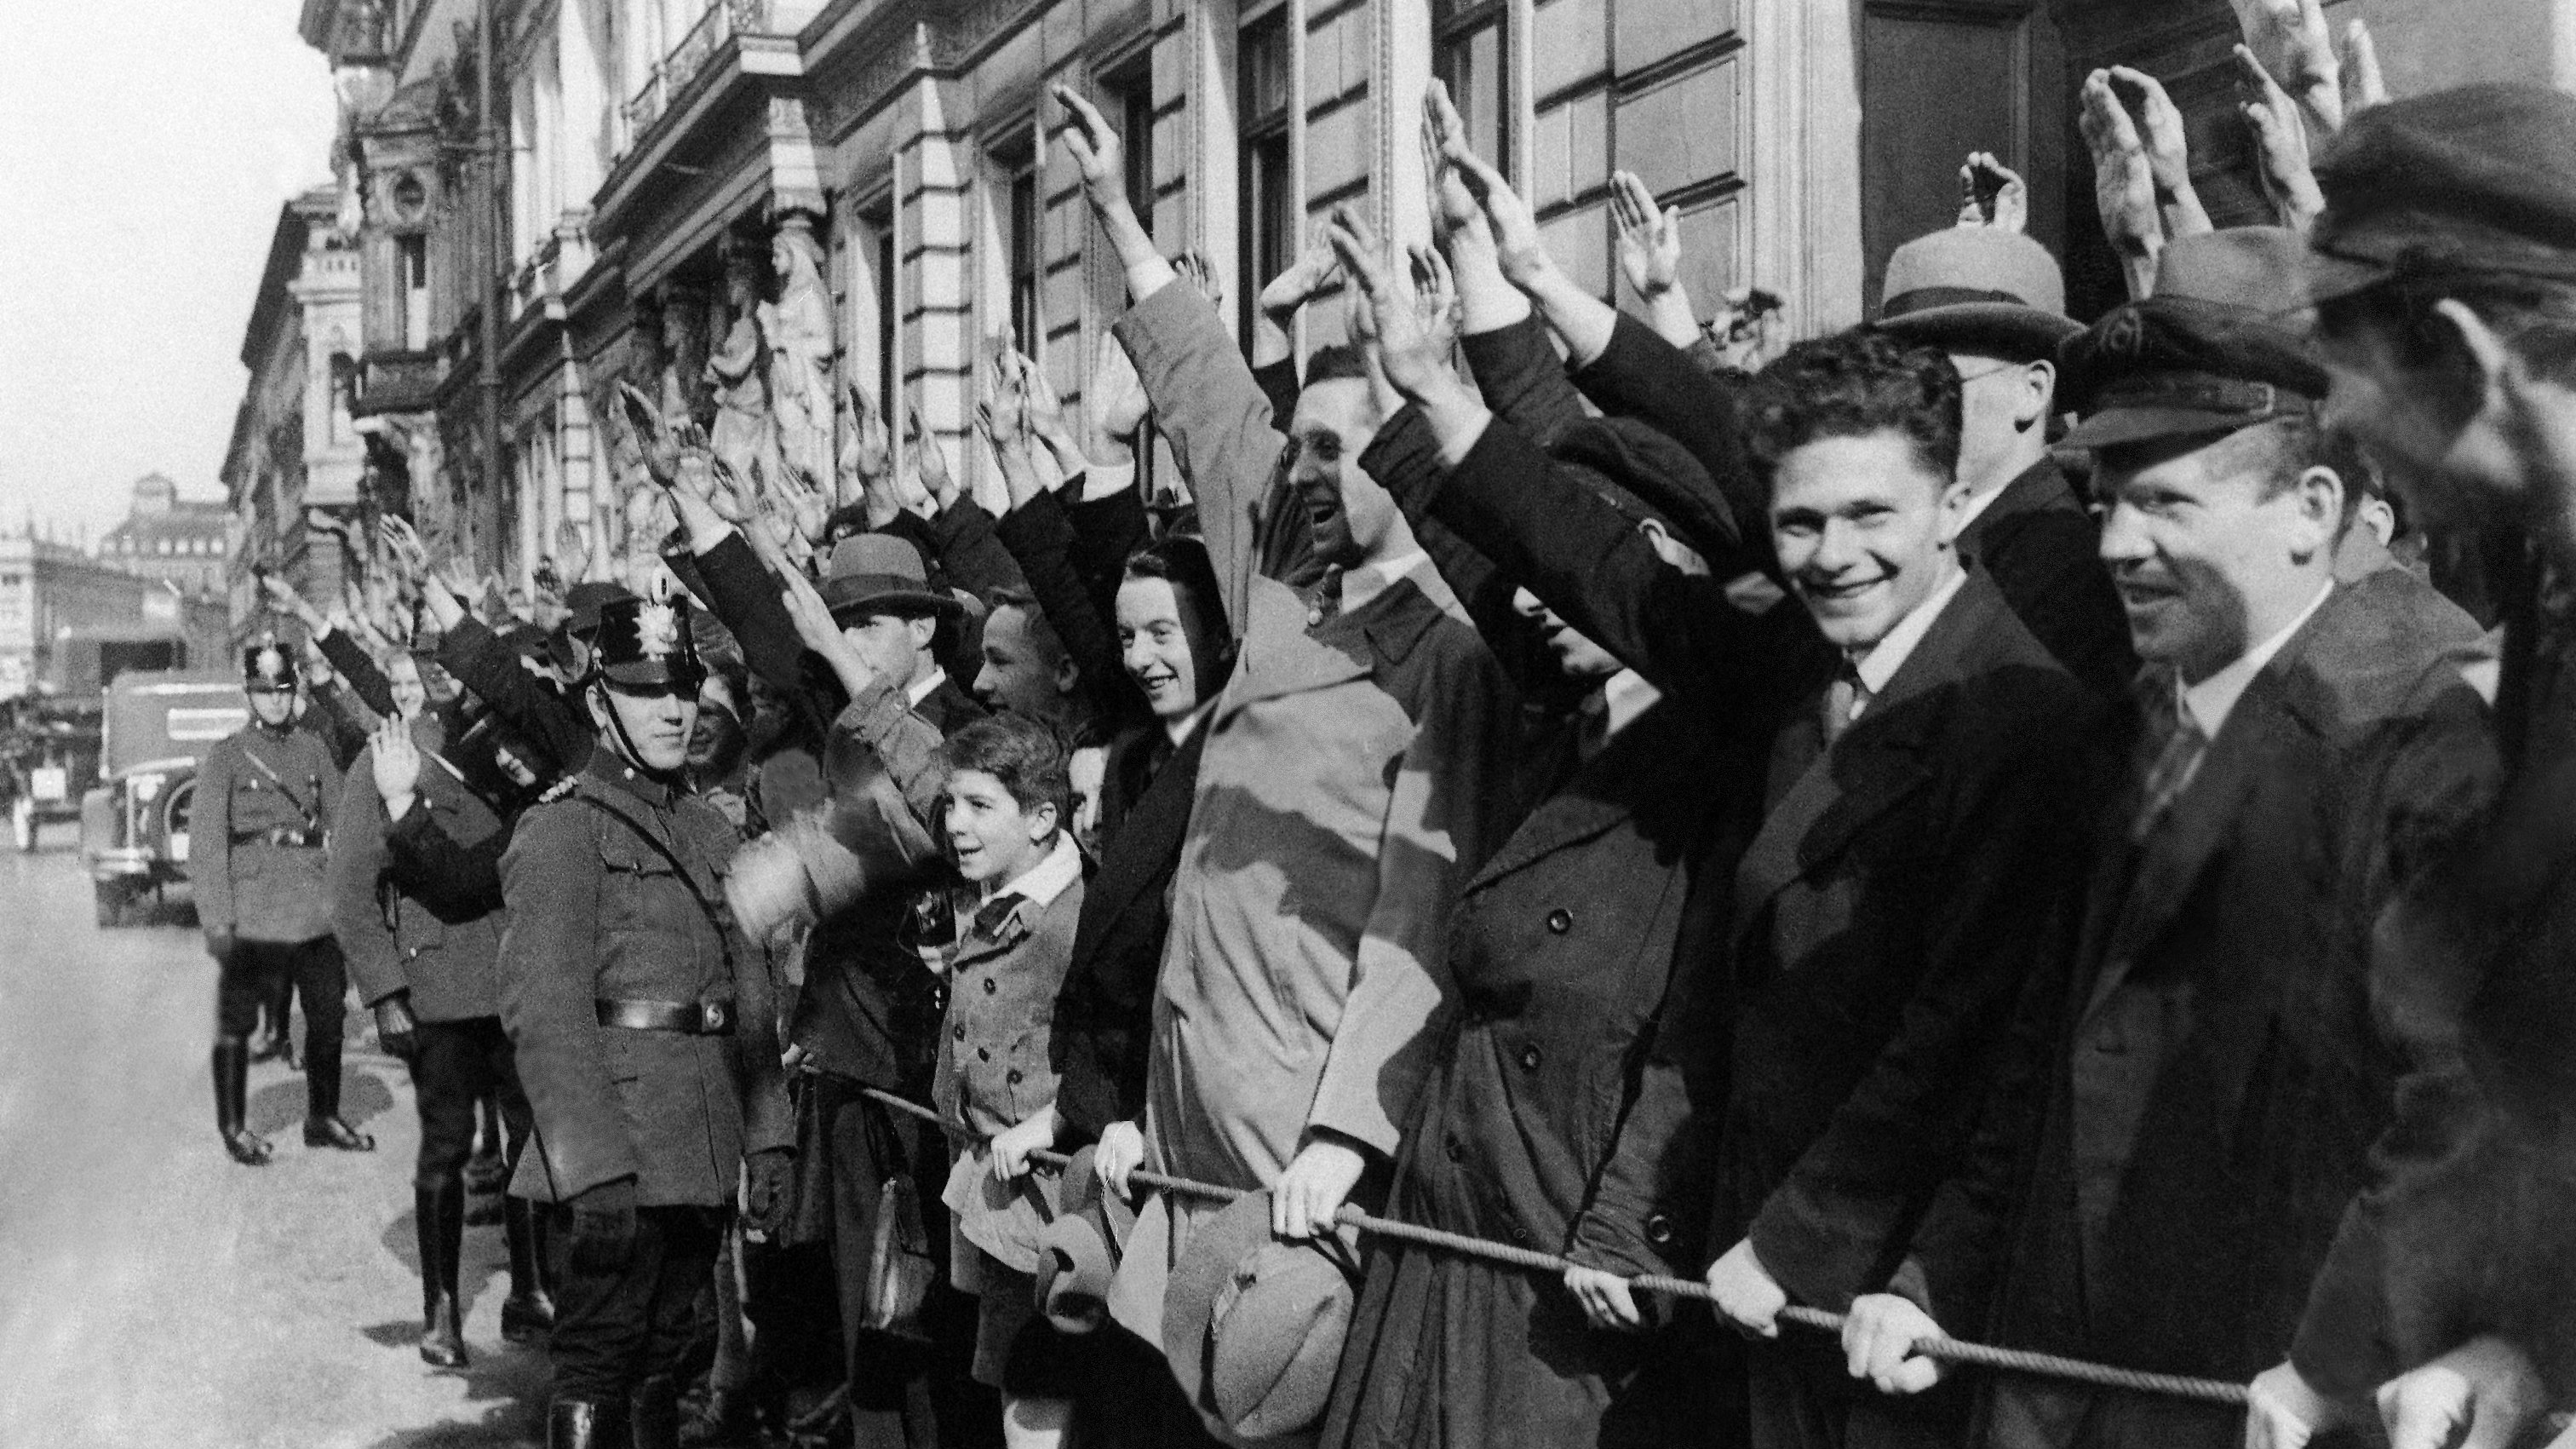 The National Socialists cheering Adolf Hitler's car in Germany on Oct. 10, 1931. President Von Hindenburg has received the first visit of Adolf Hitler. (AP Photo)